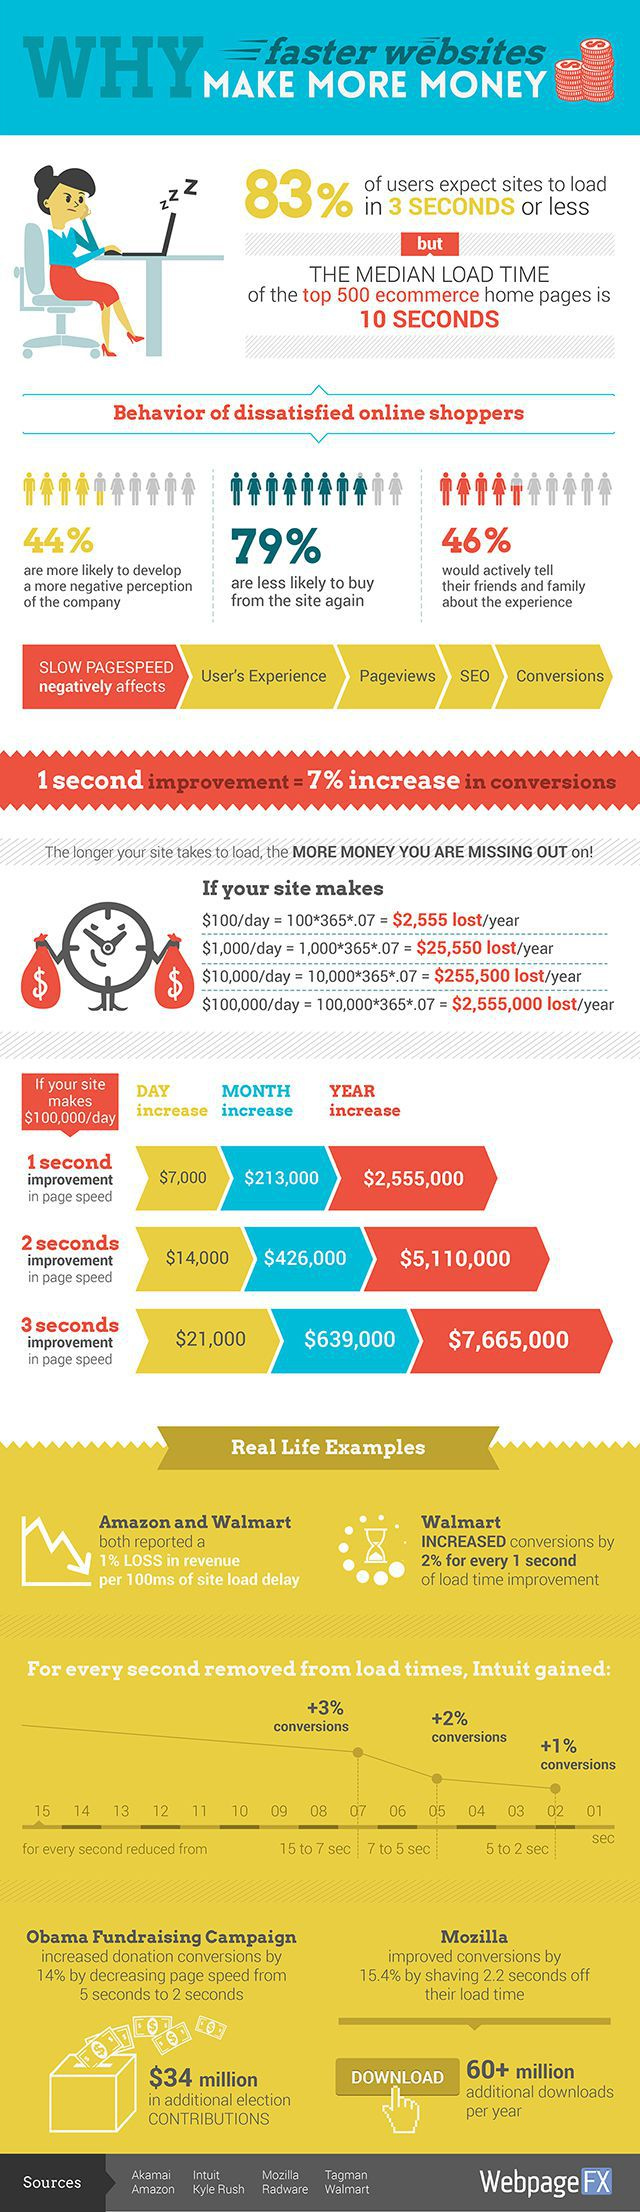 Why Faster Websites Make More Money infographic full-size